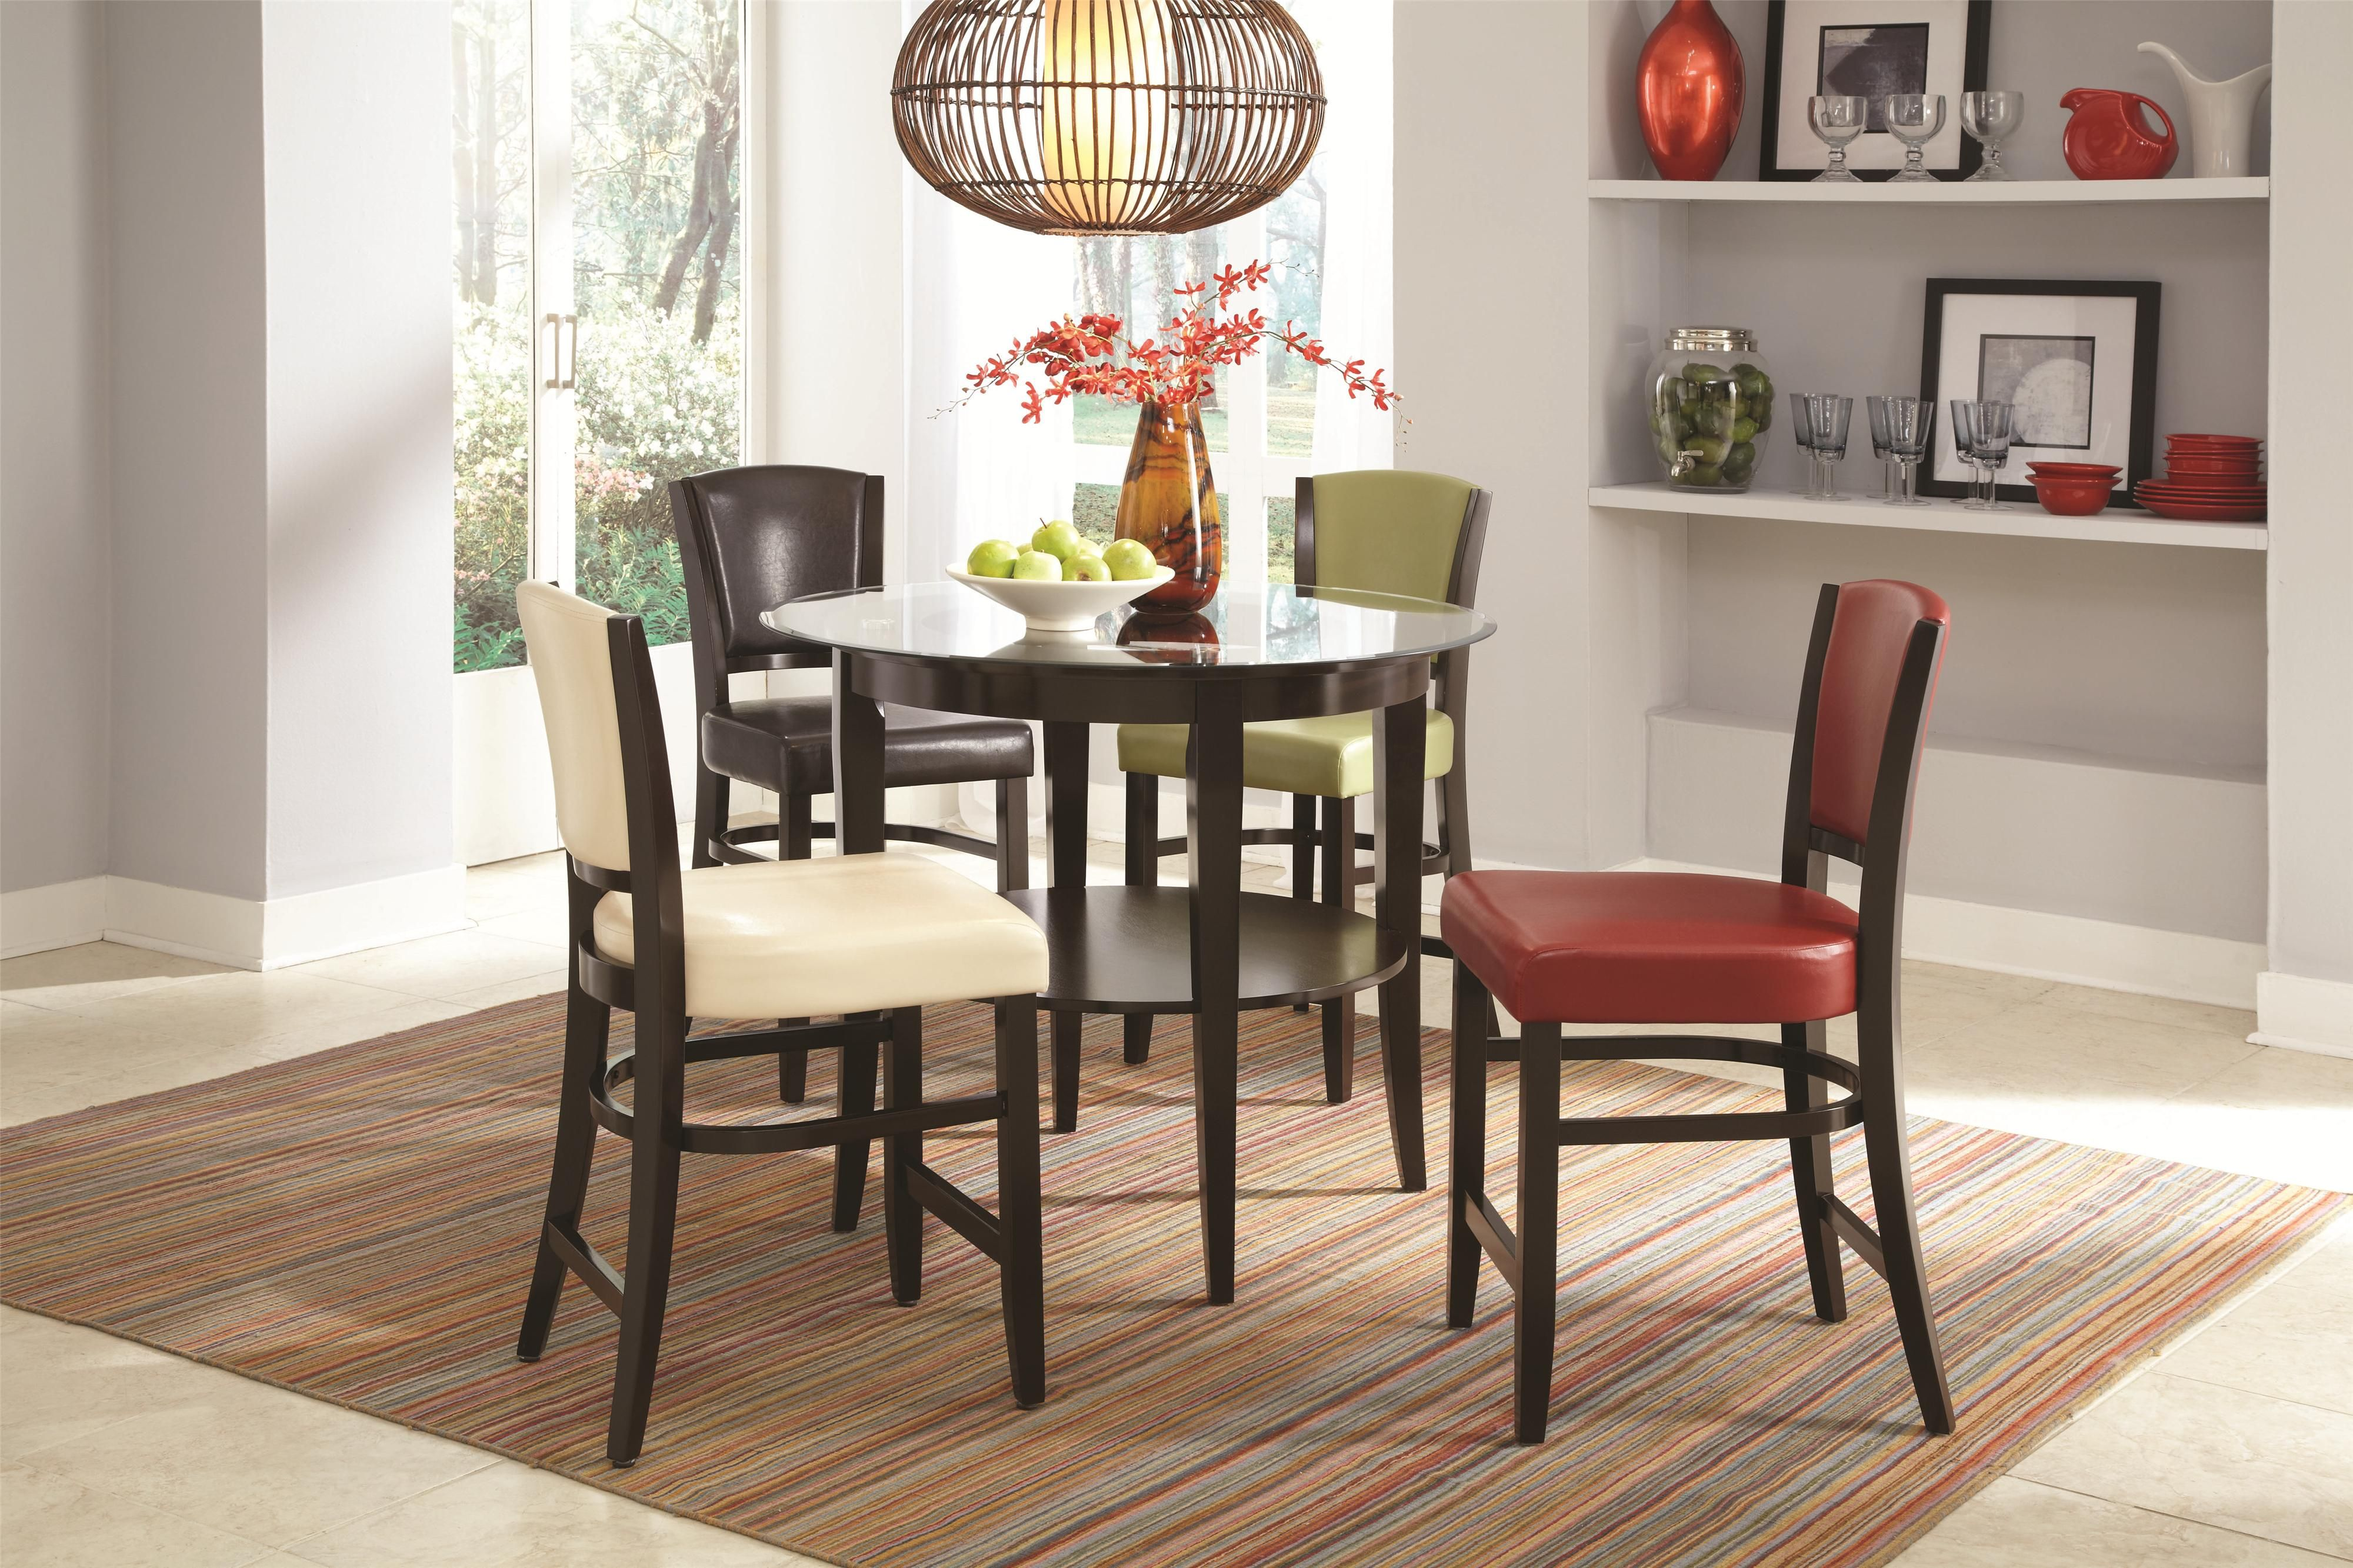 103688  Dining 1036 Round Glass Top Pub Table With Shelf  *buy Brilliant Round Dining Room Table For Sale Review